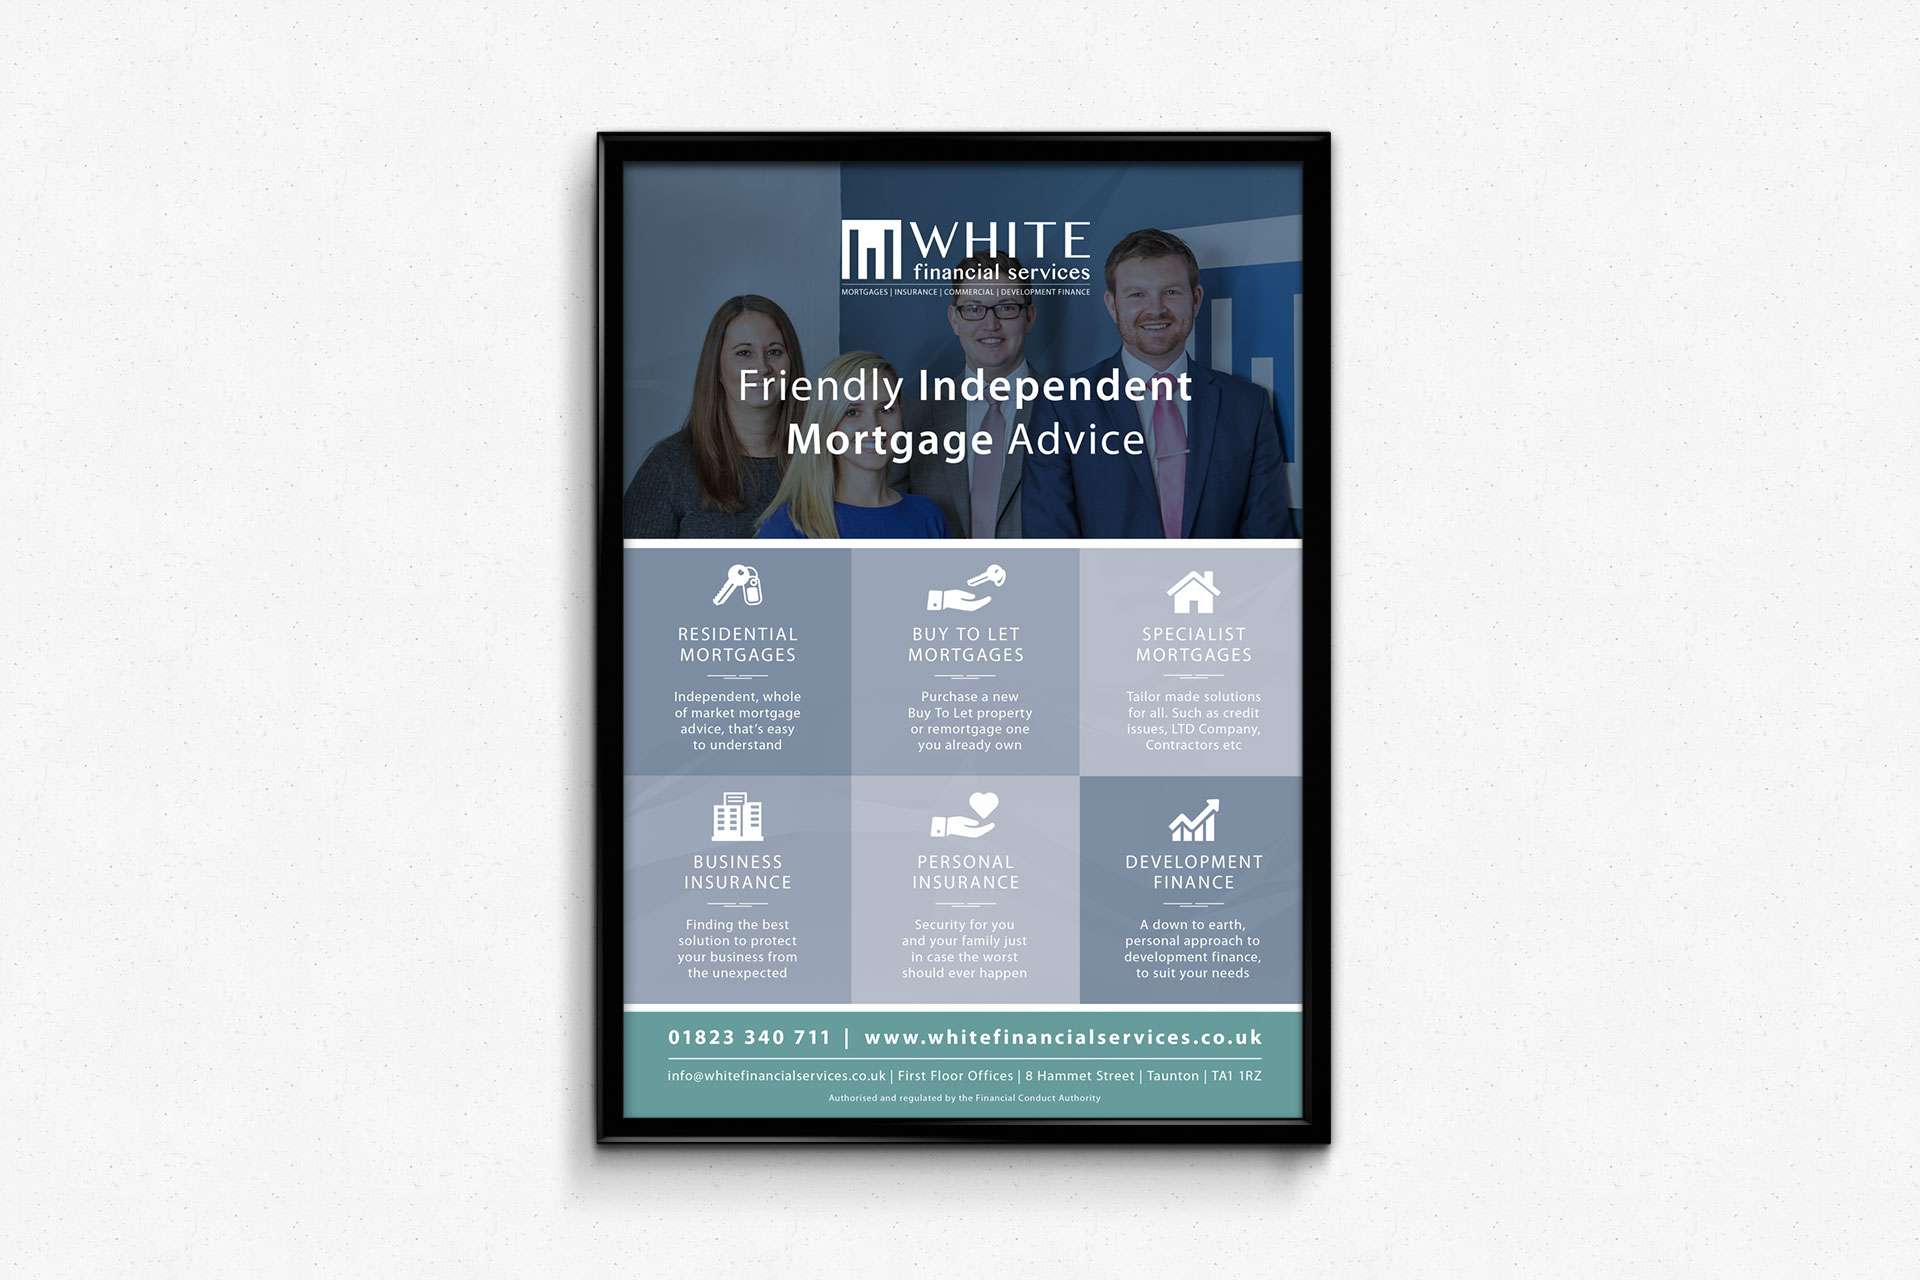 White Financial Business Services Poster Design Taunton Somerset